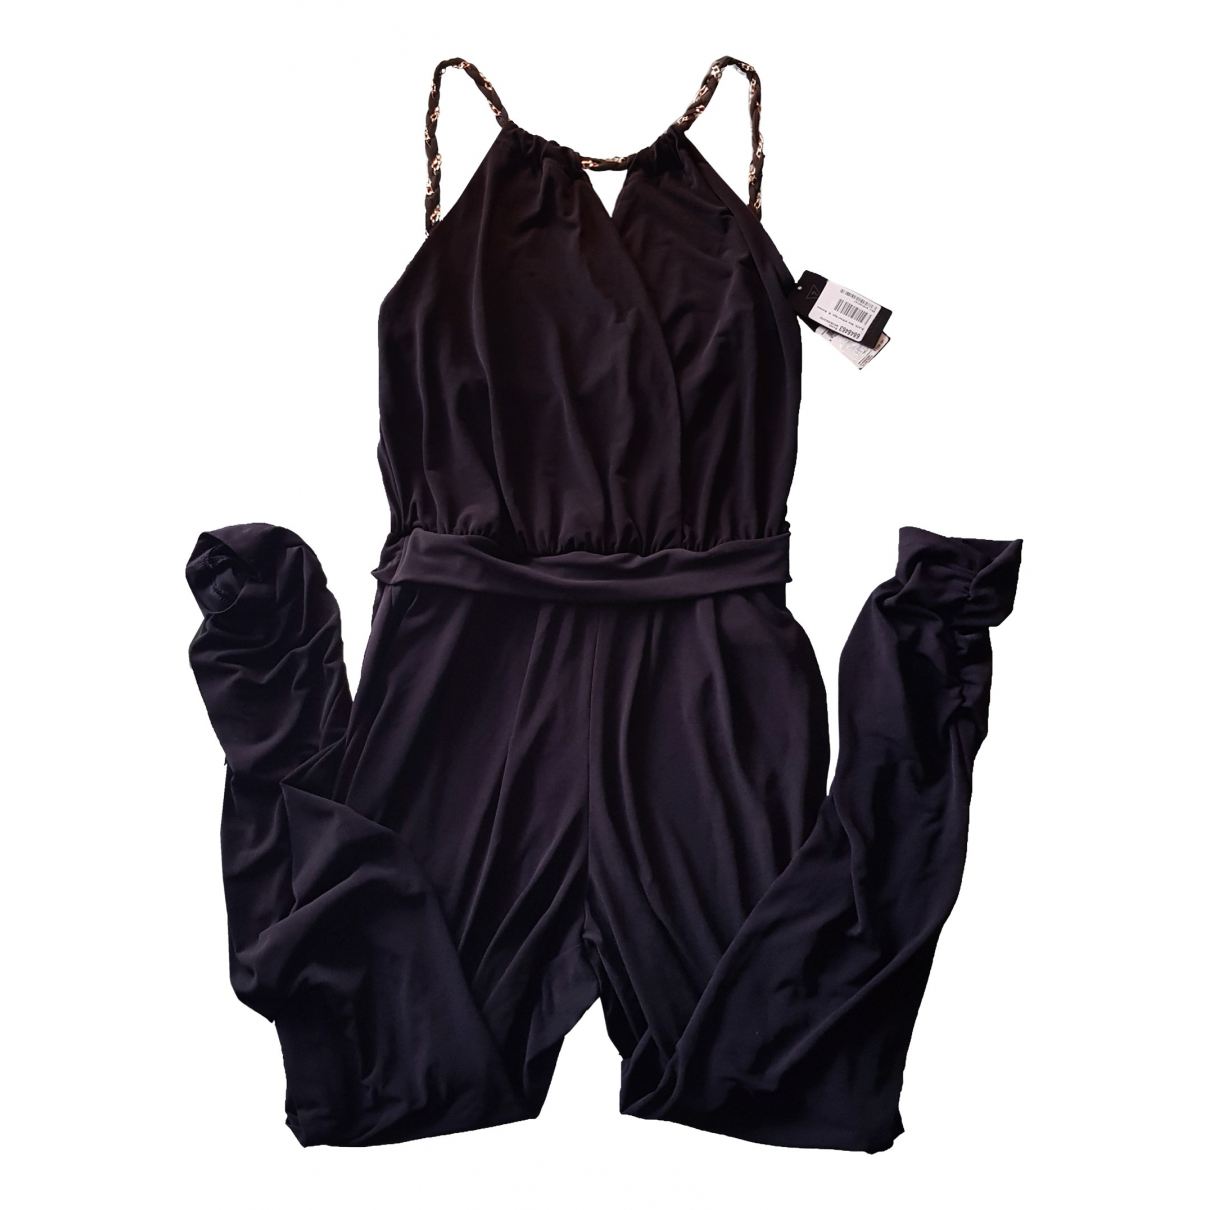 Guess \N Black jumpsuit for Women M International